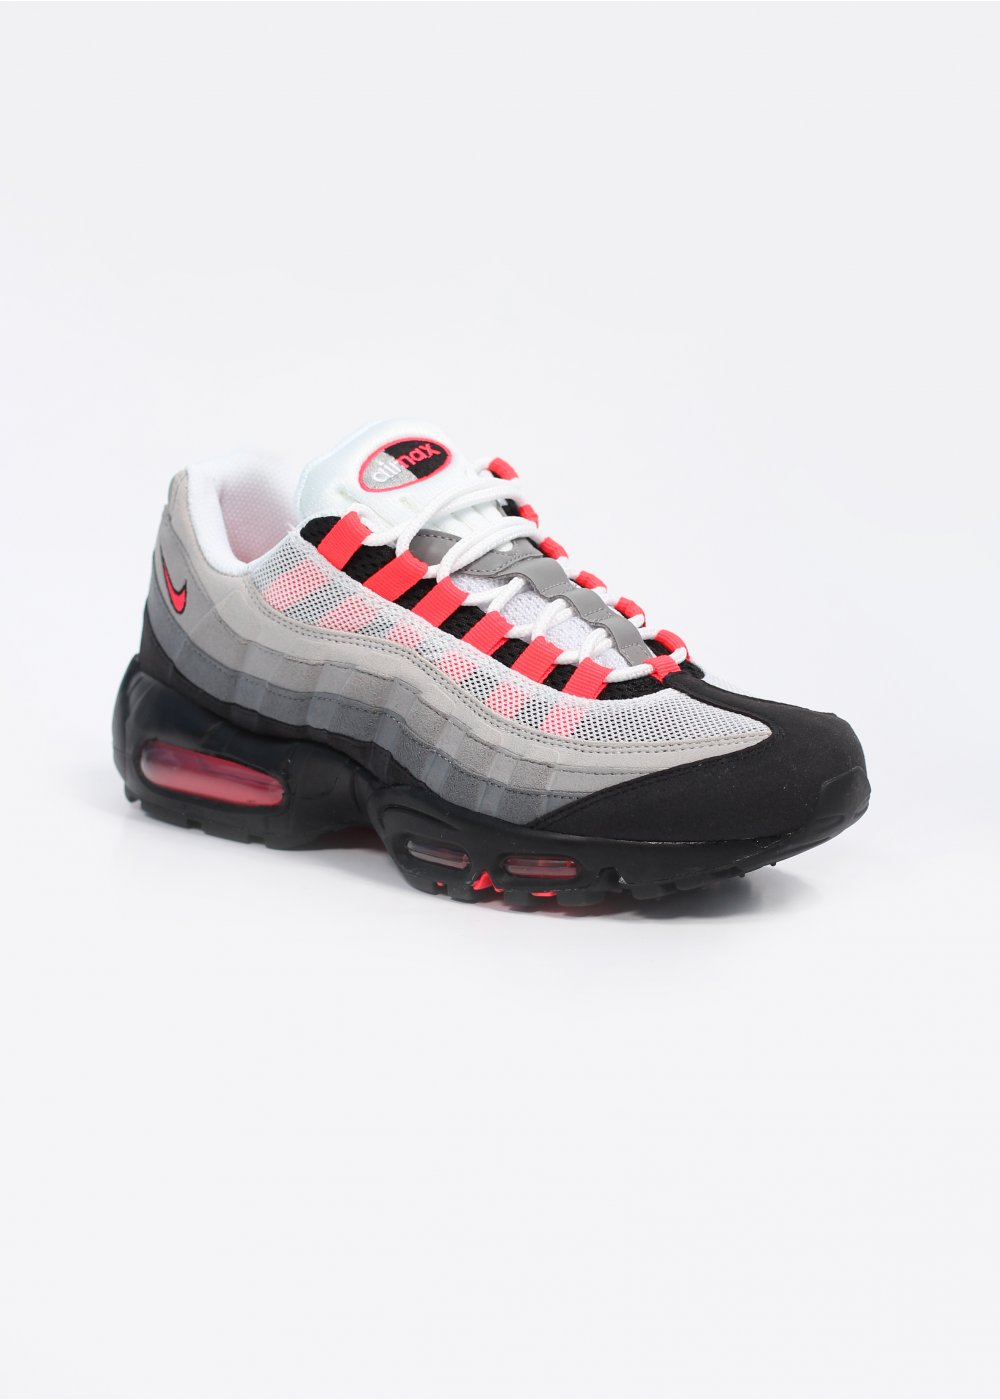 reputable site 494ce 07ad5 australia air max 95 foot locker fuse 1c6d9 20b8c